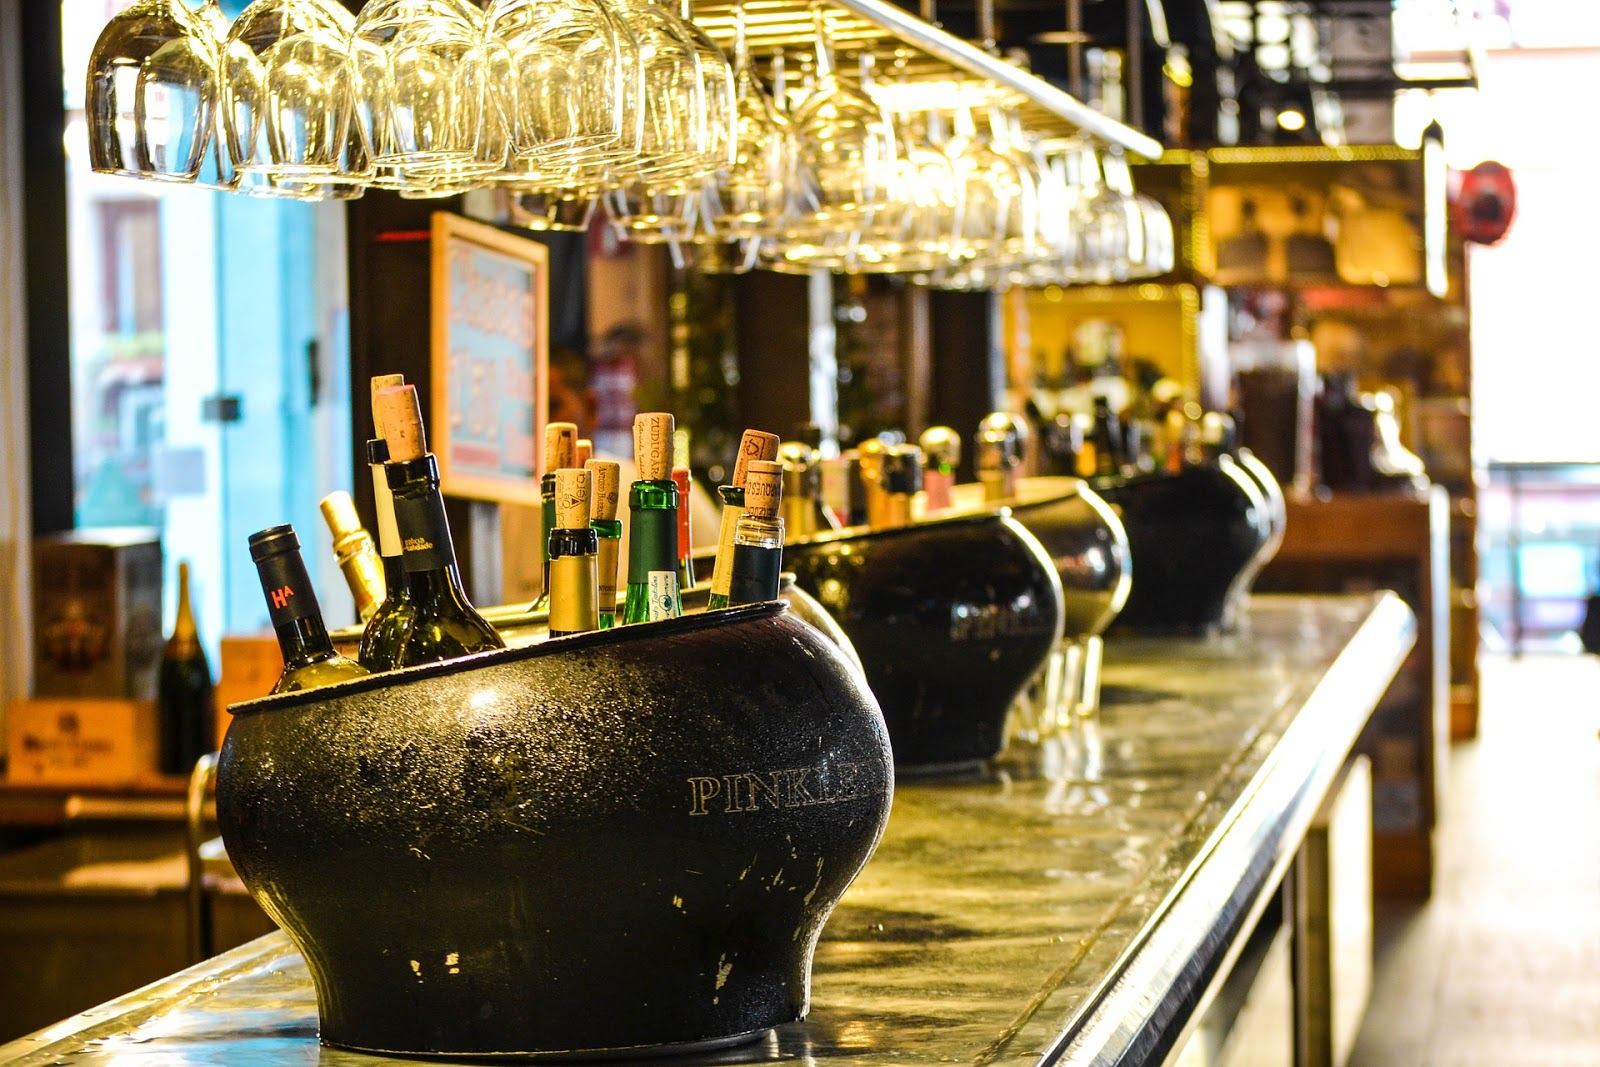 This bar is ready for St. Patrick's Day with couldrons of beers ready to grab on their bar.